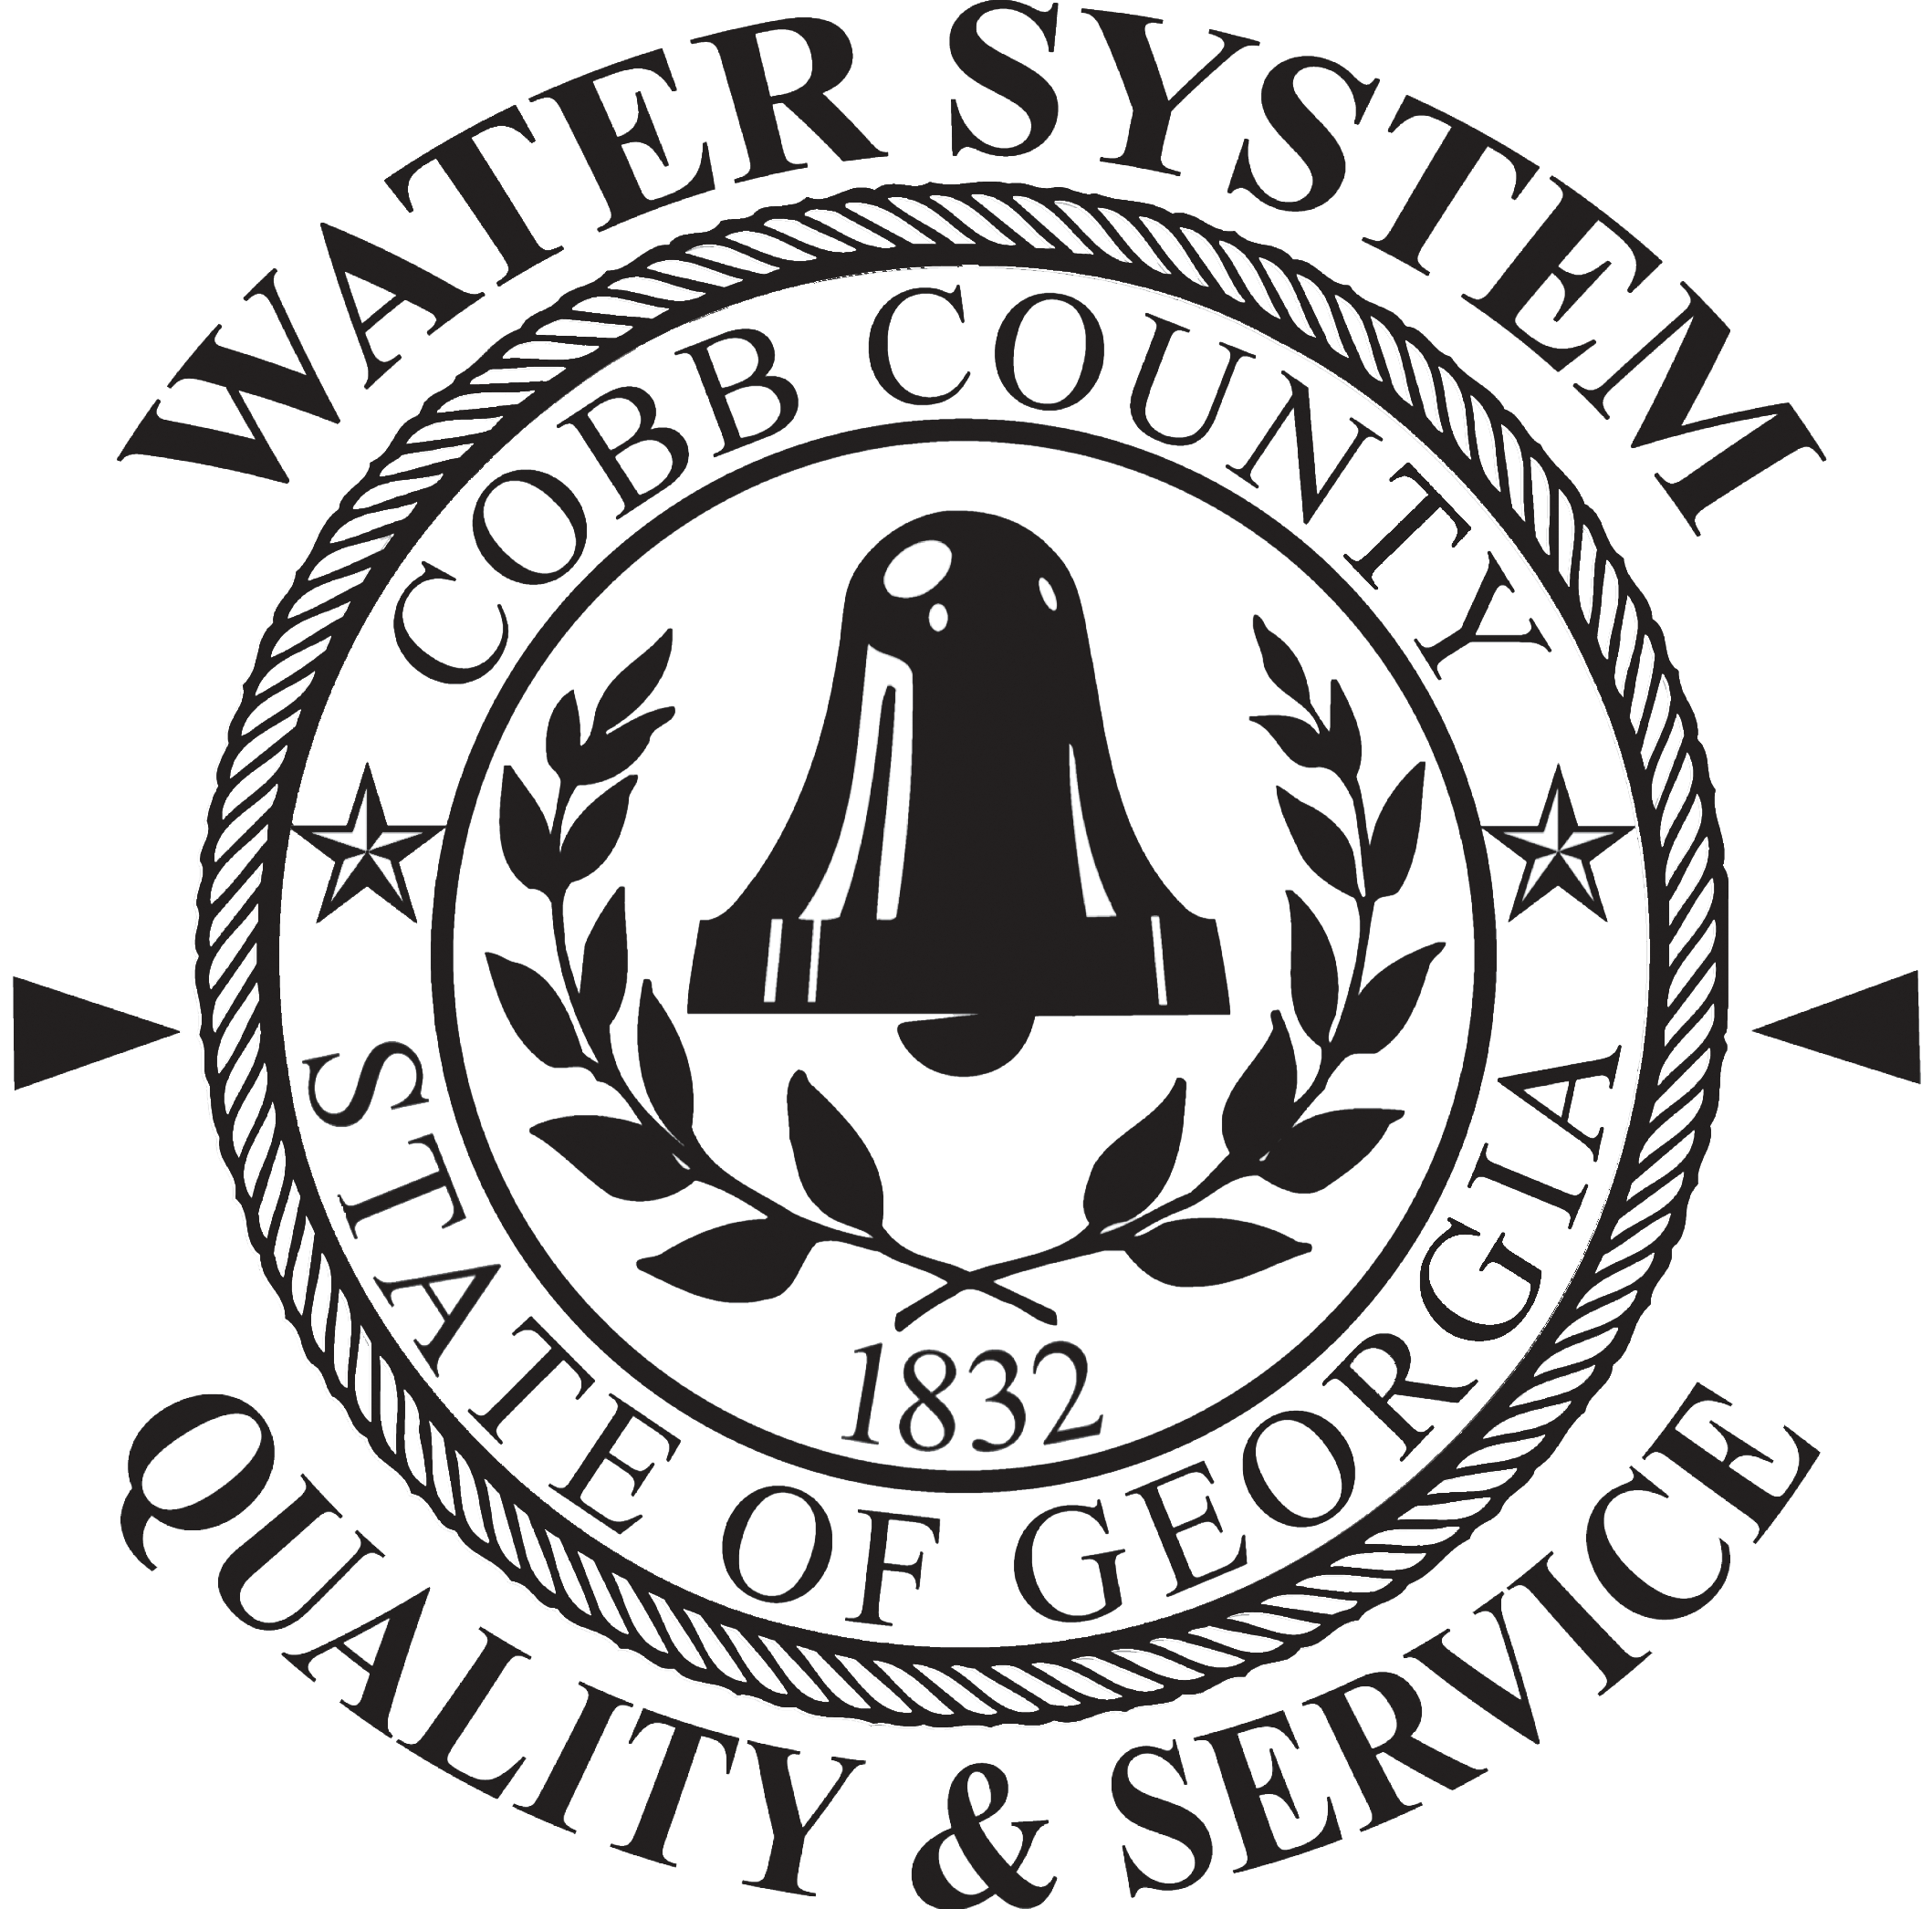 <h4>Cobb County Water System</h4>